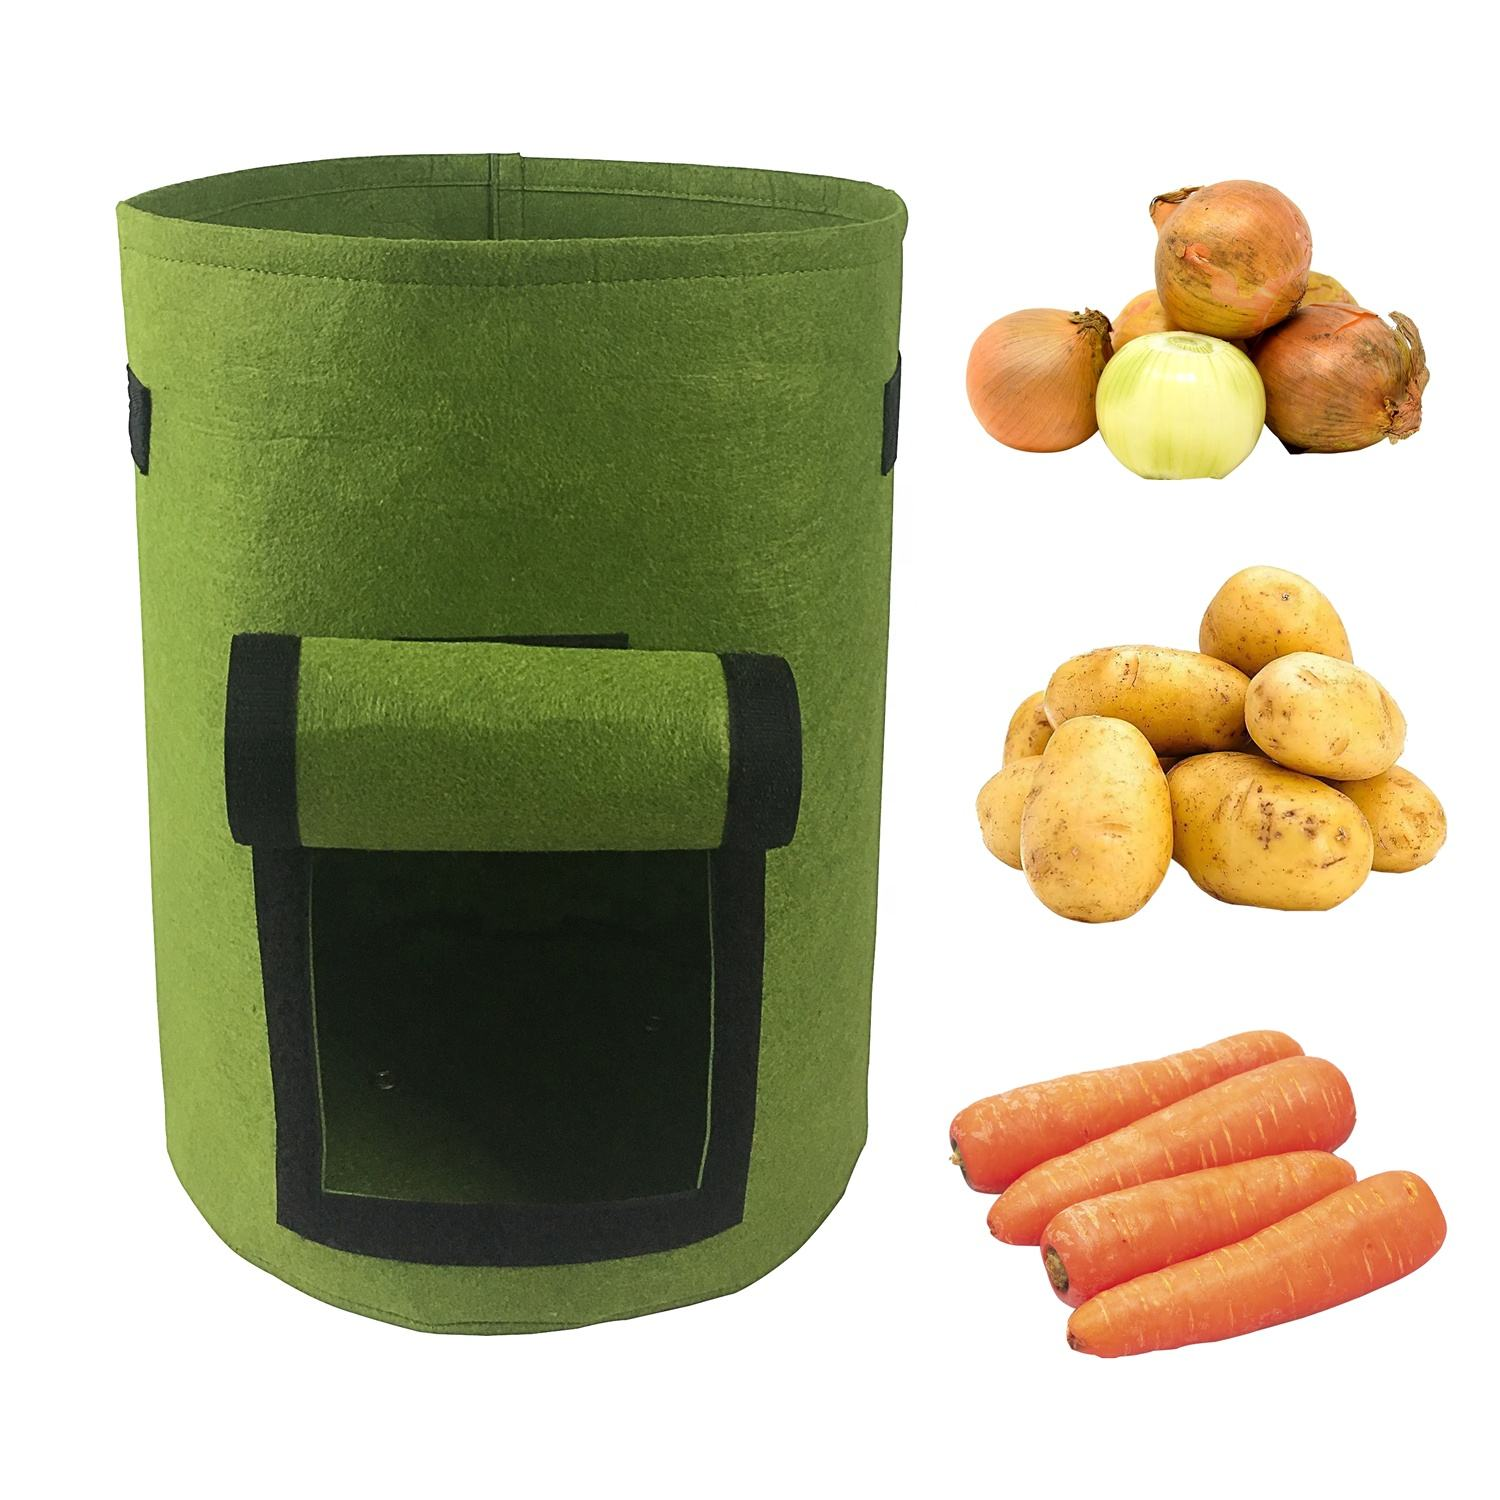 6-Pack 7 Gallons Grow Bags Potato Planter Bag Planting Grow Bags Felt Fabric Pots for Grow Vegetables,Potato,Carrot and Onion